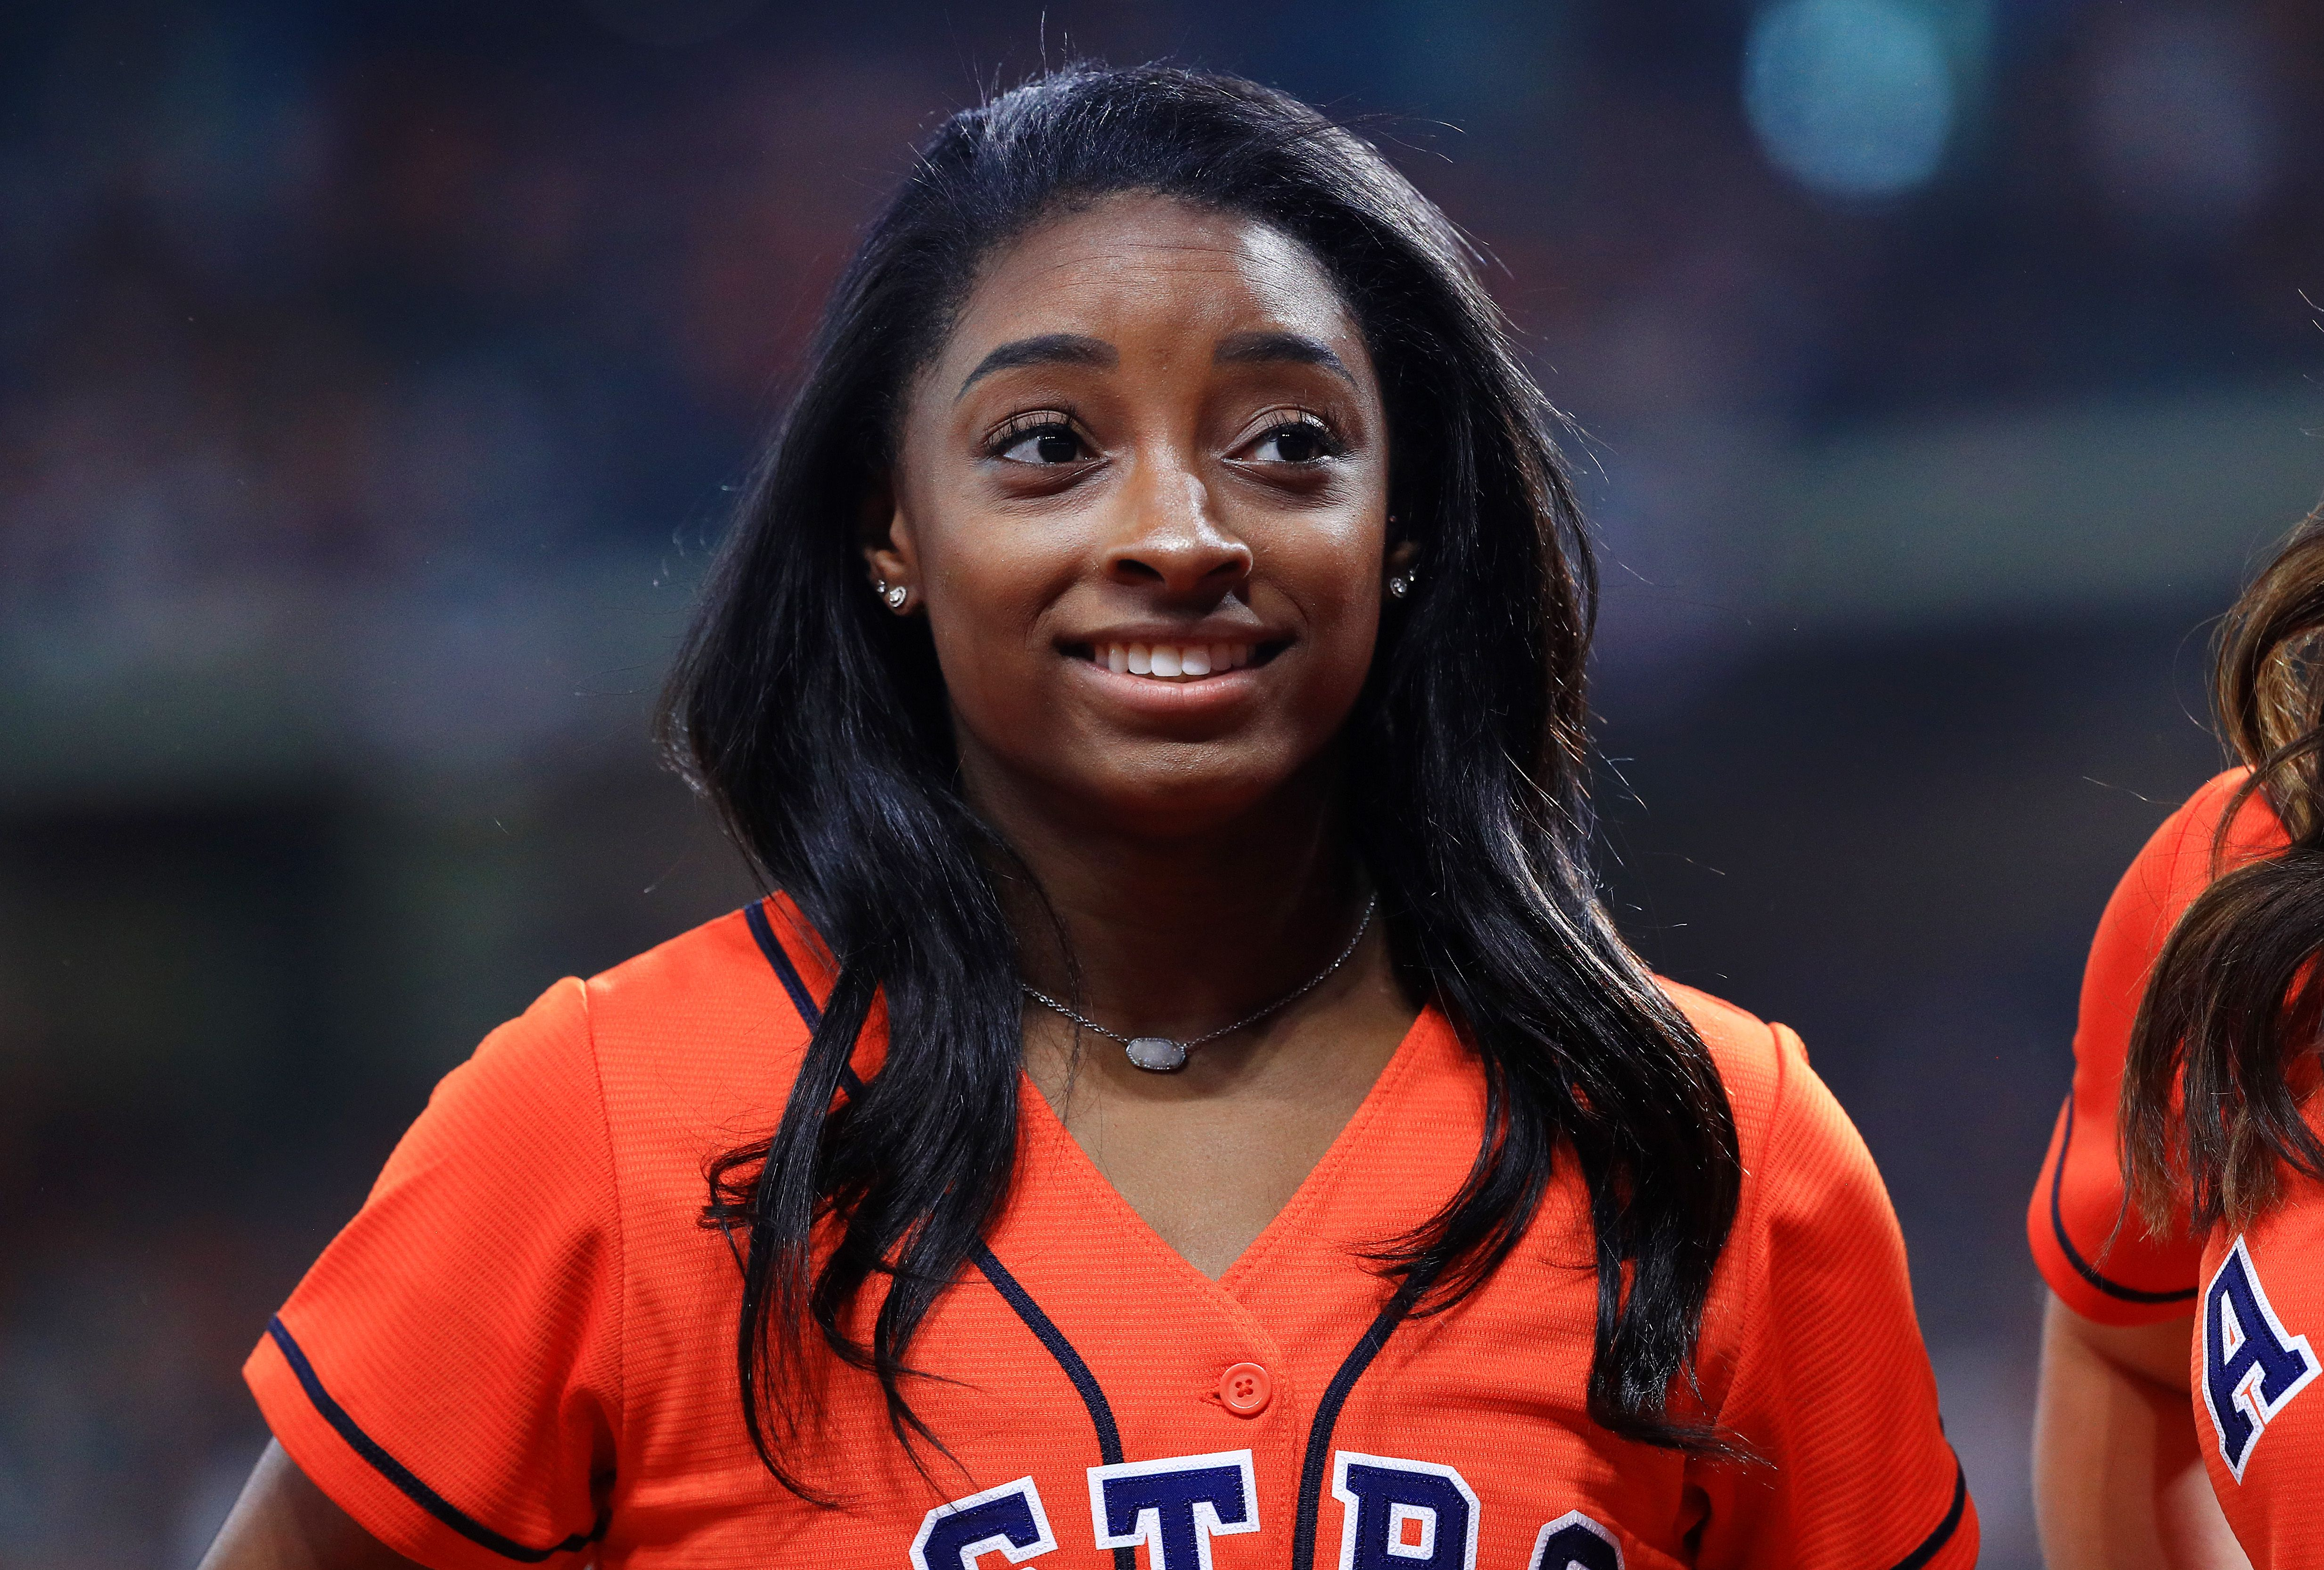 Gymnast Simone Biles at a game between the Houston Astros and the Washington Nationals on October 23, 2019. | Photo: Getty Images